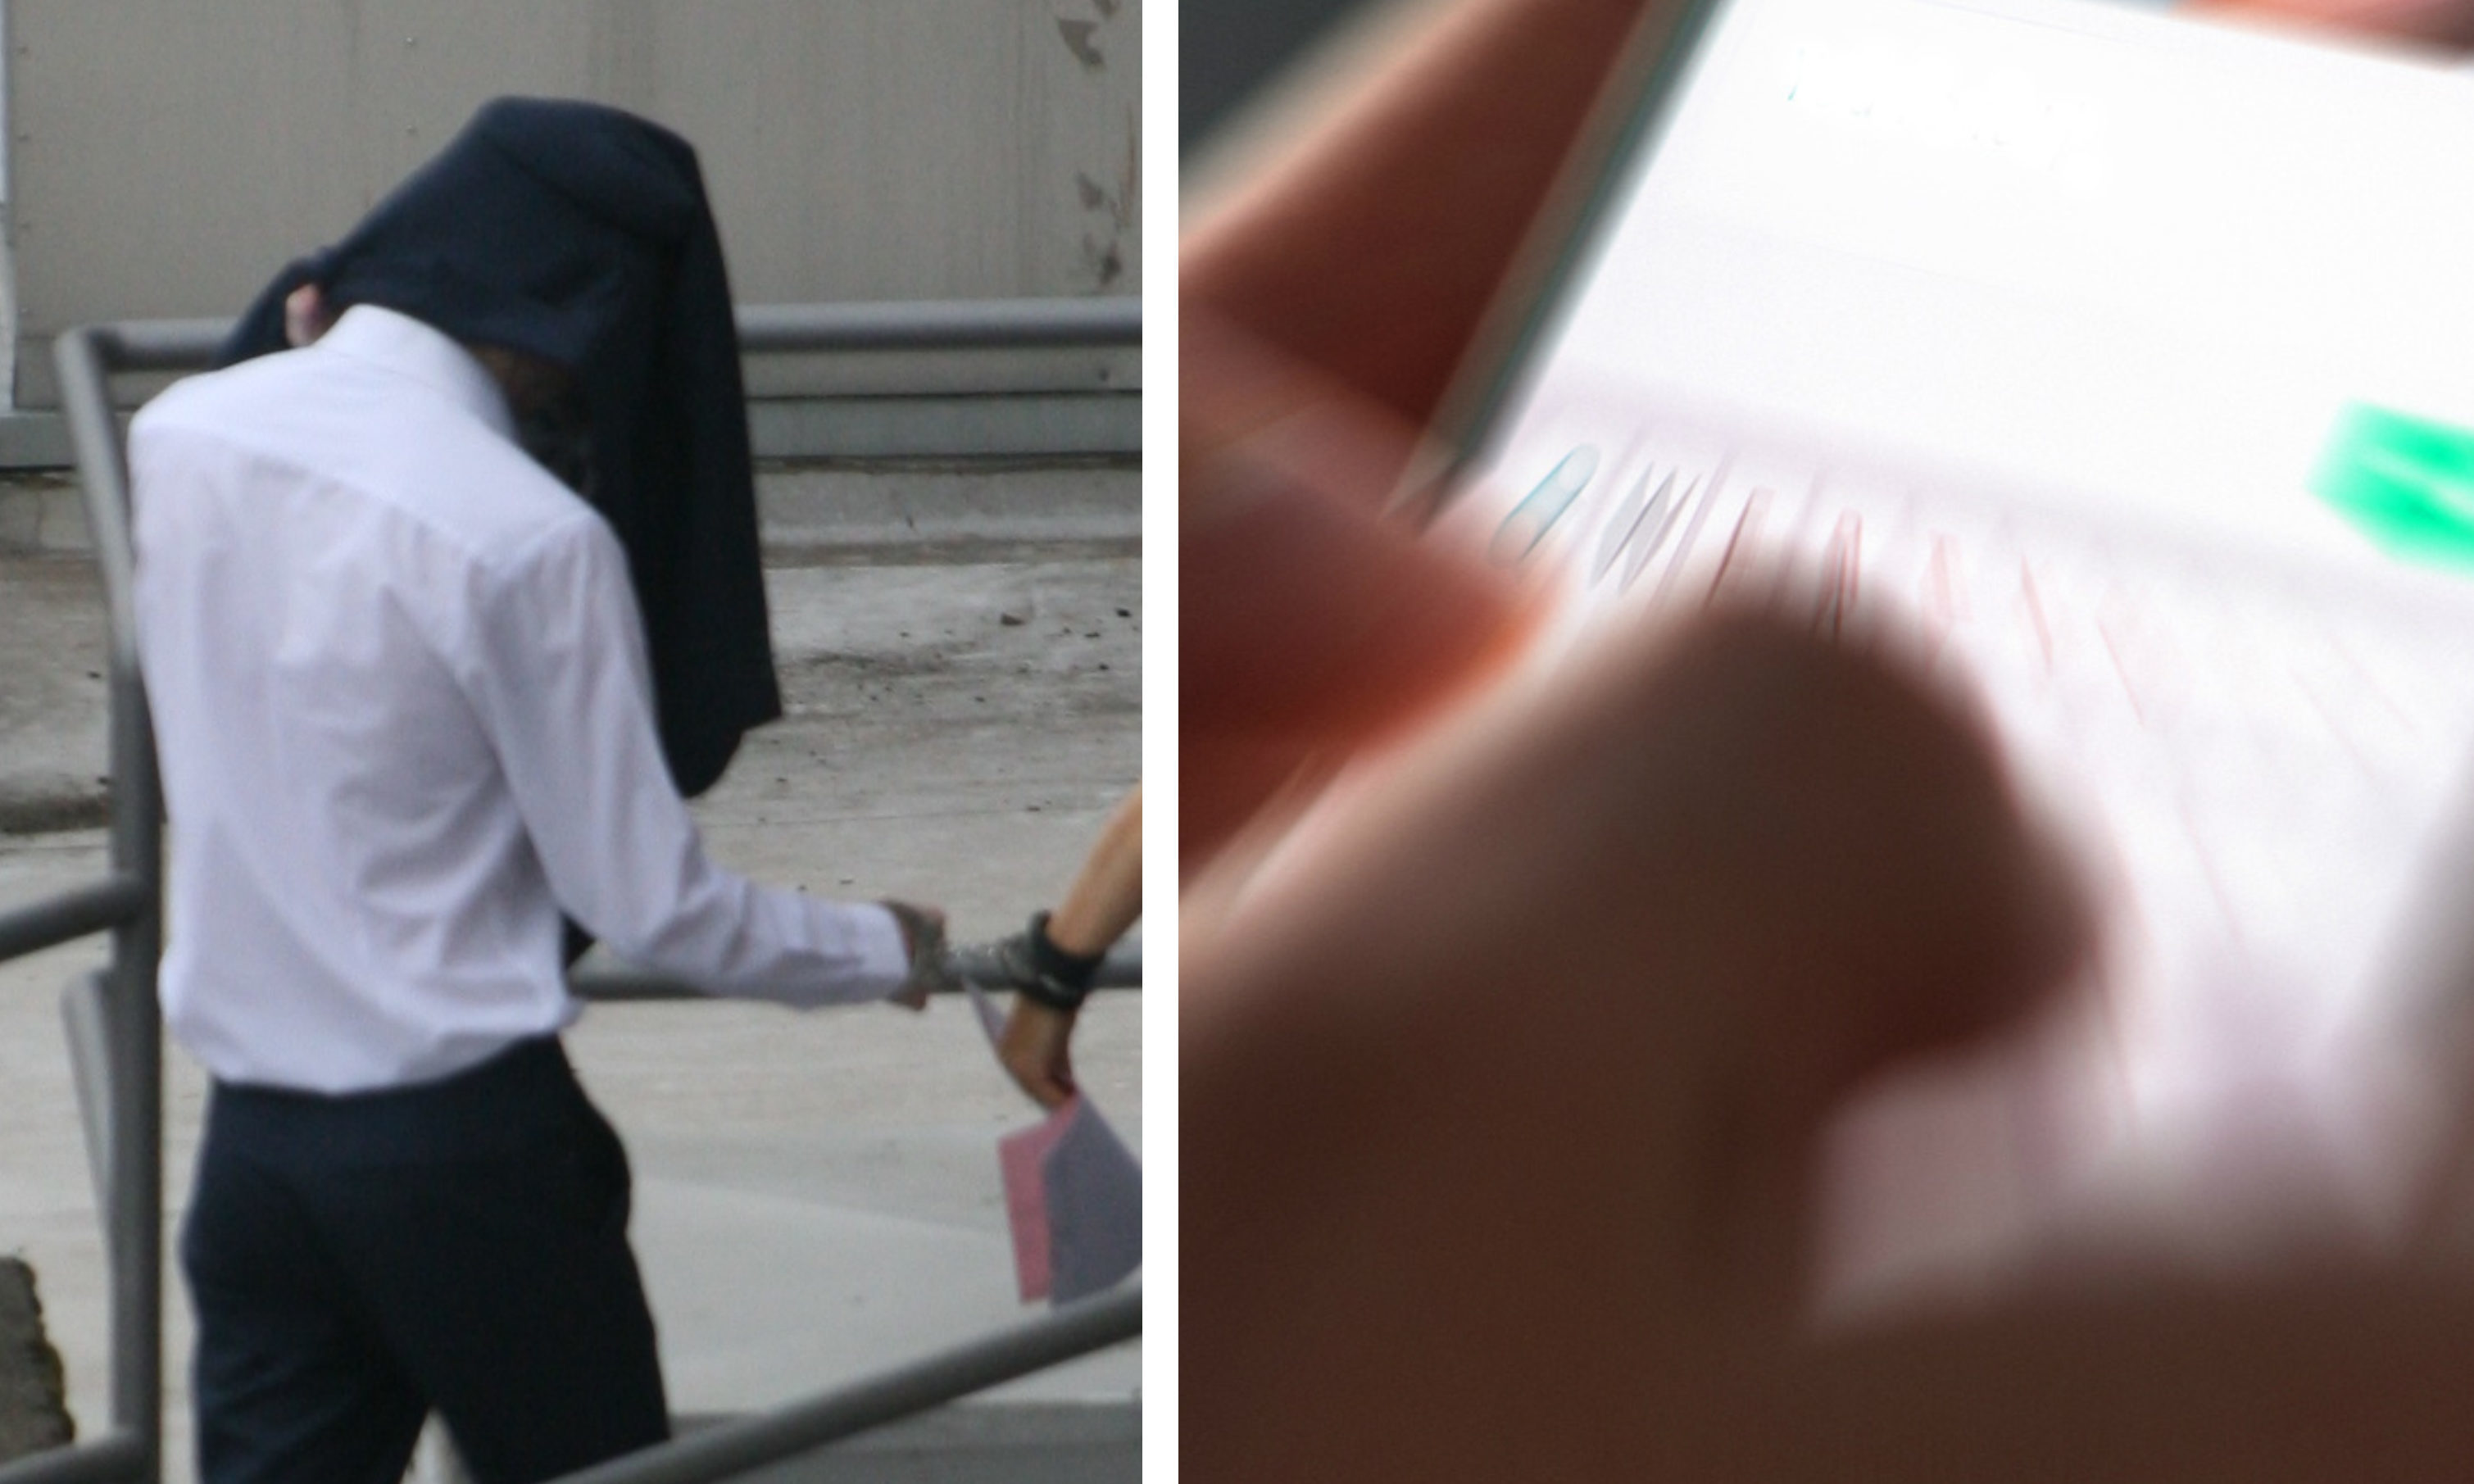 O'Neill, who was found guilty of online extortion, hid his face as he was led into court.